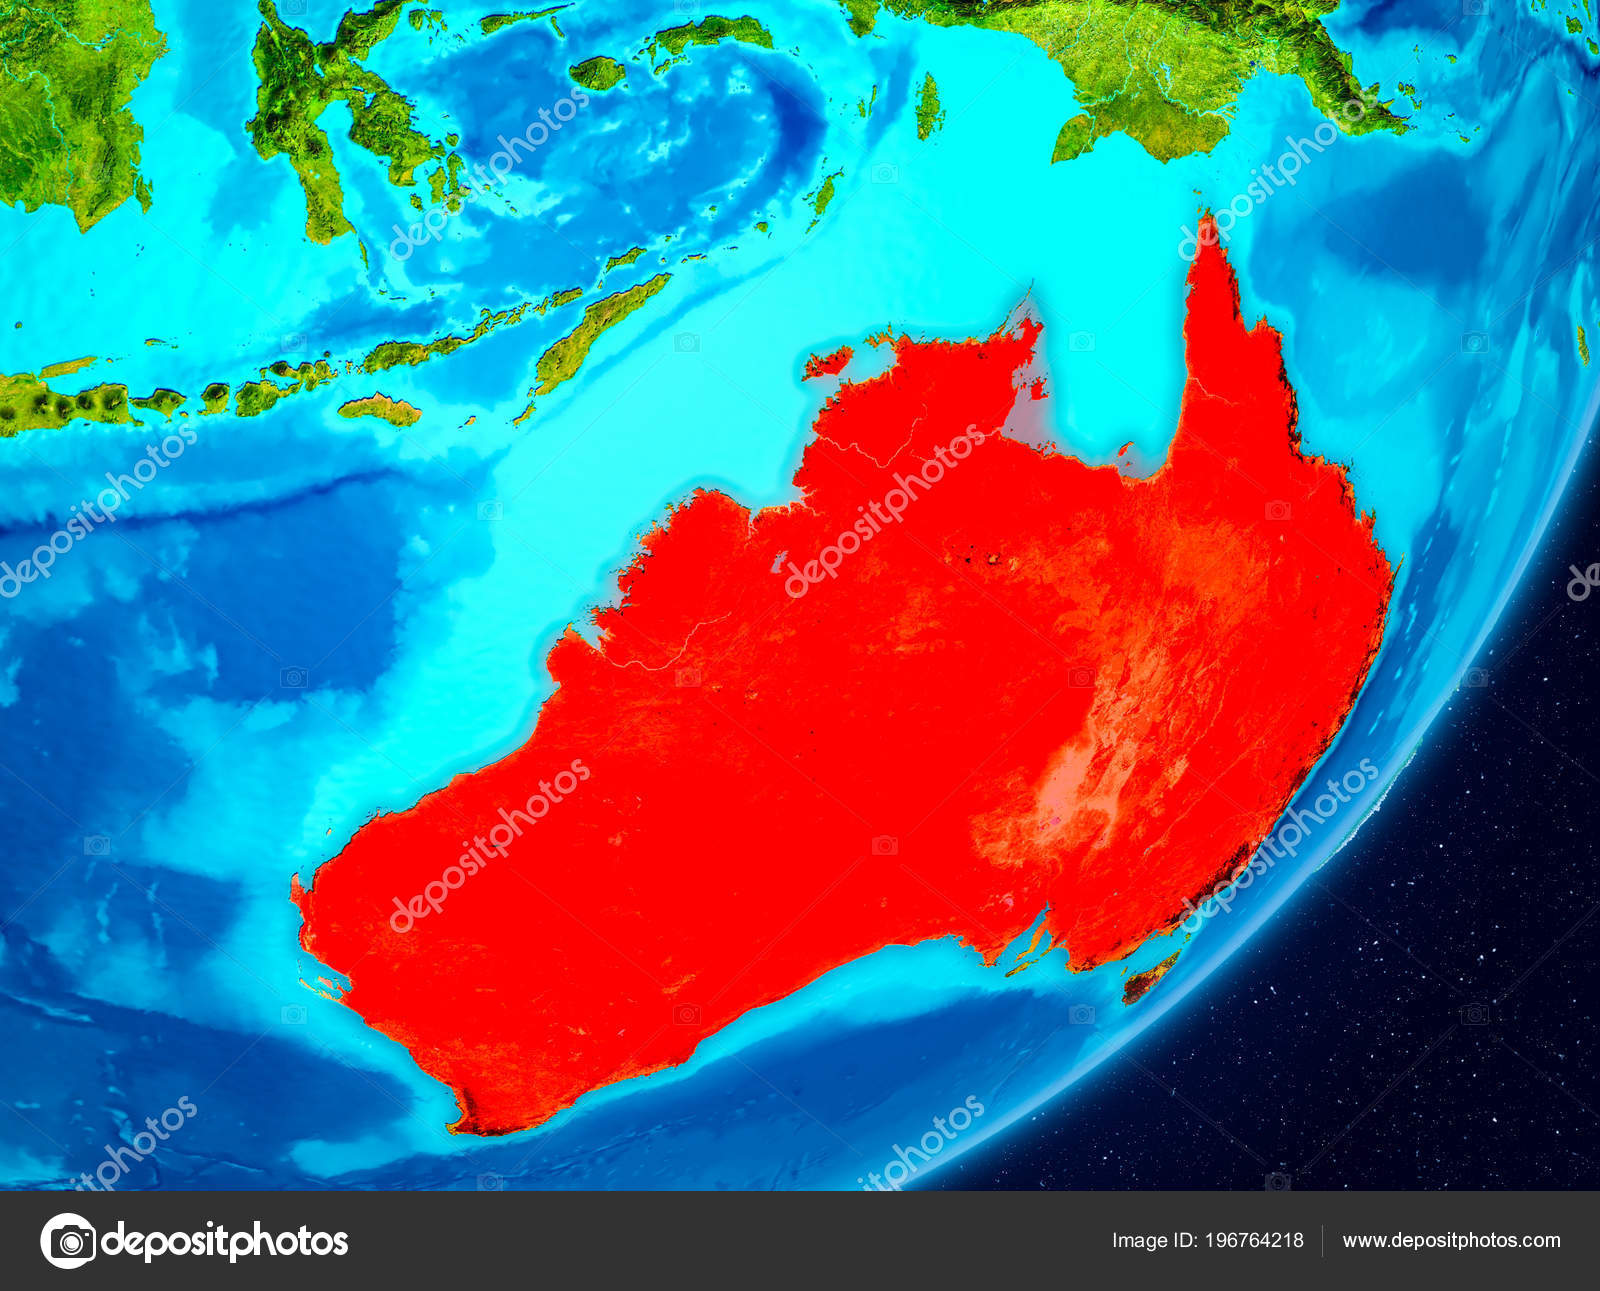 Map Of Australia From Space.Map Australia Seen Space Planet Earth Illustration Elements Image